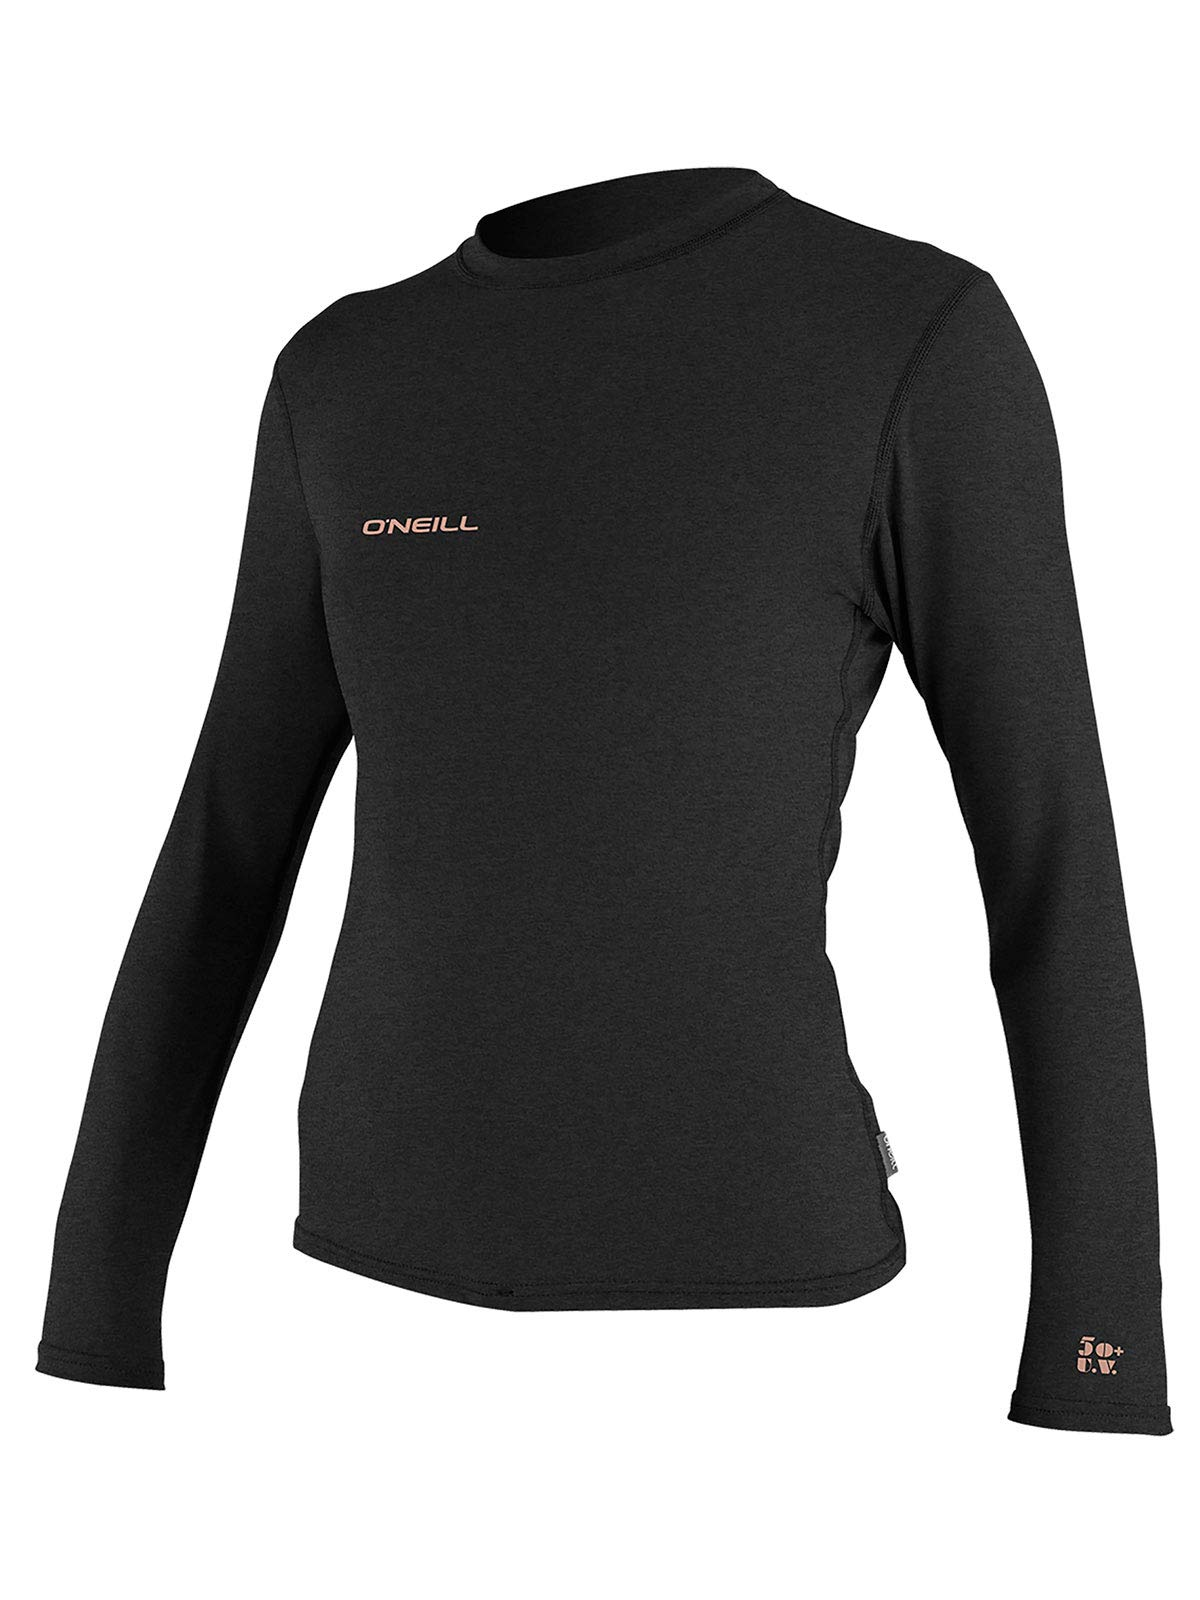 O'Neill Wetsuits Women's Hybrid UPF 50+ Long Sleeve Sun Shirt, Black, X-Large by O'Neill Wetsuits